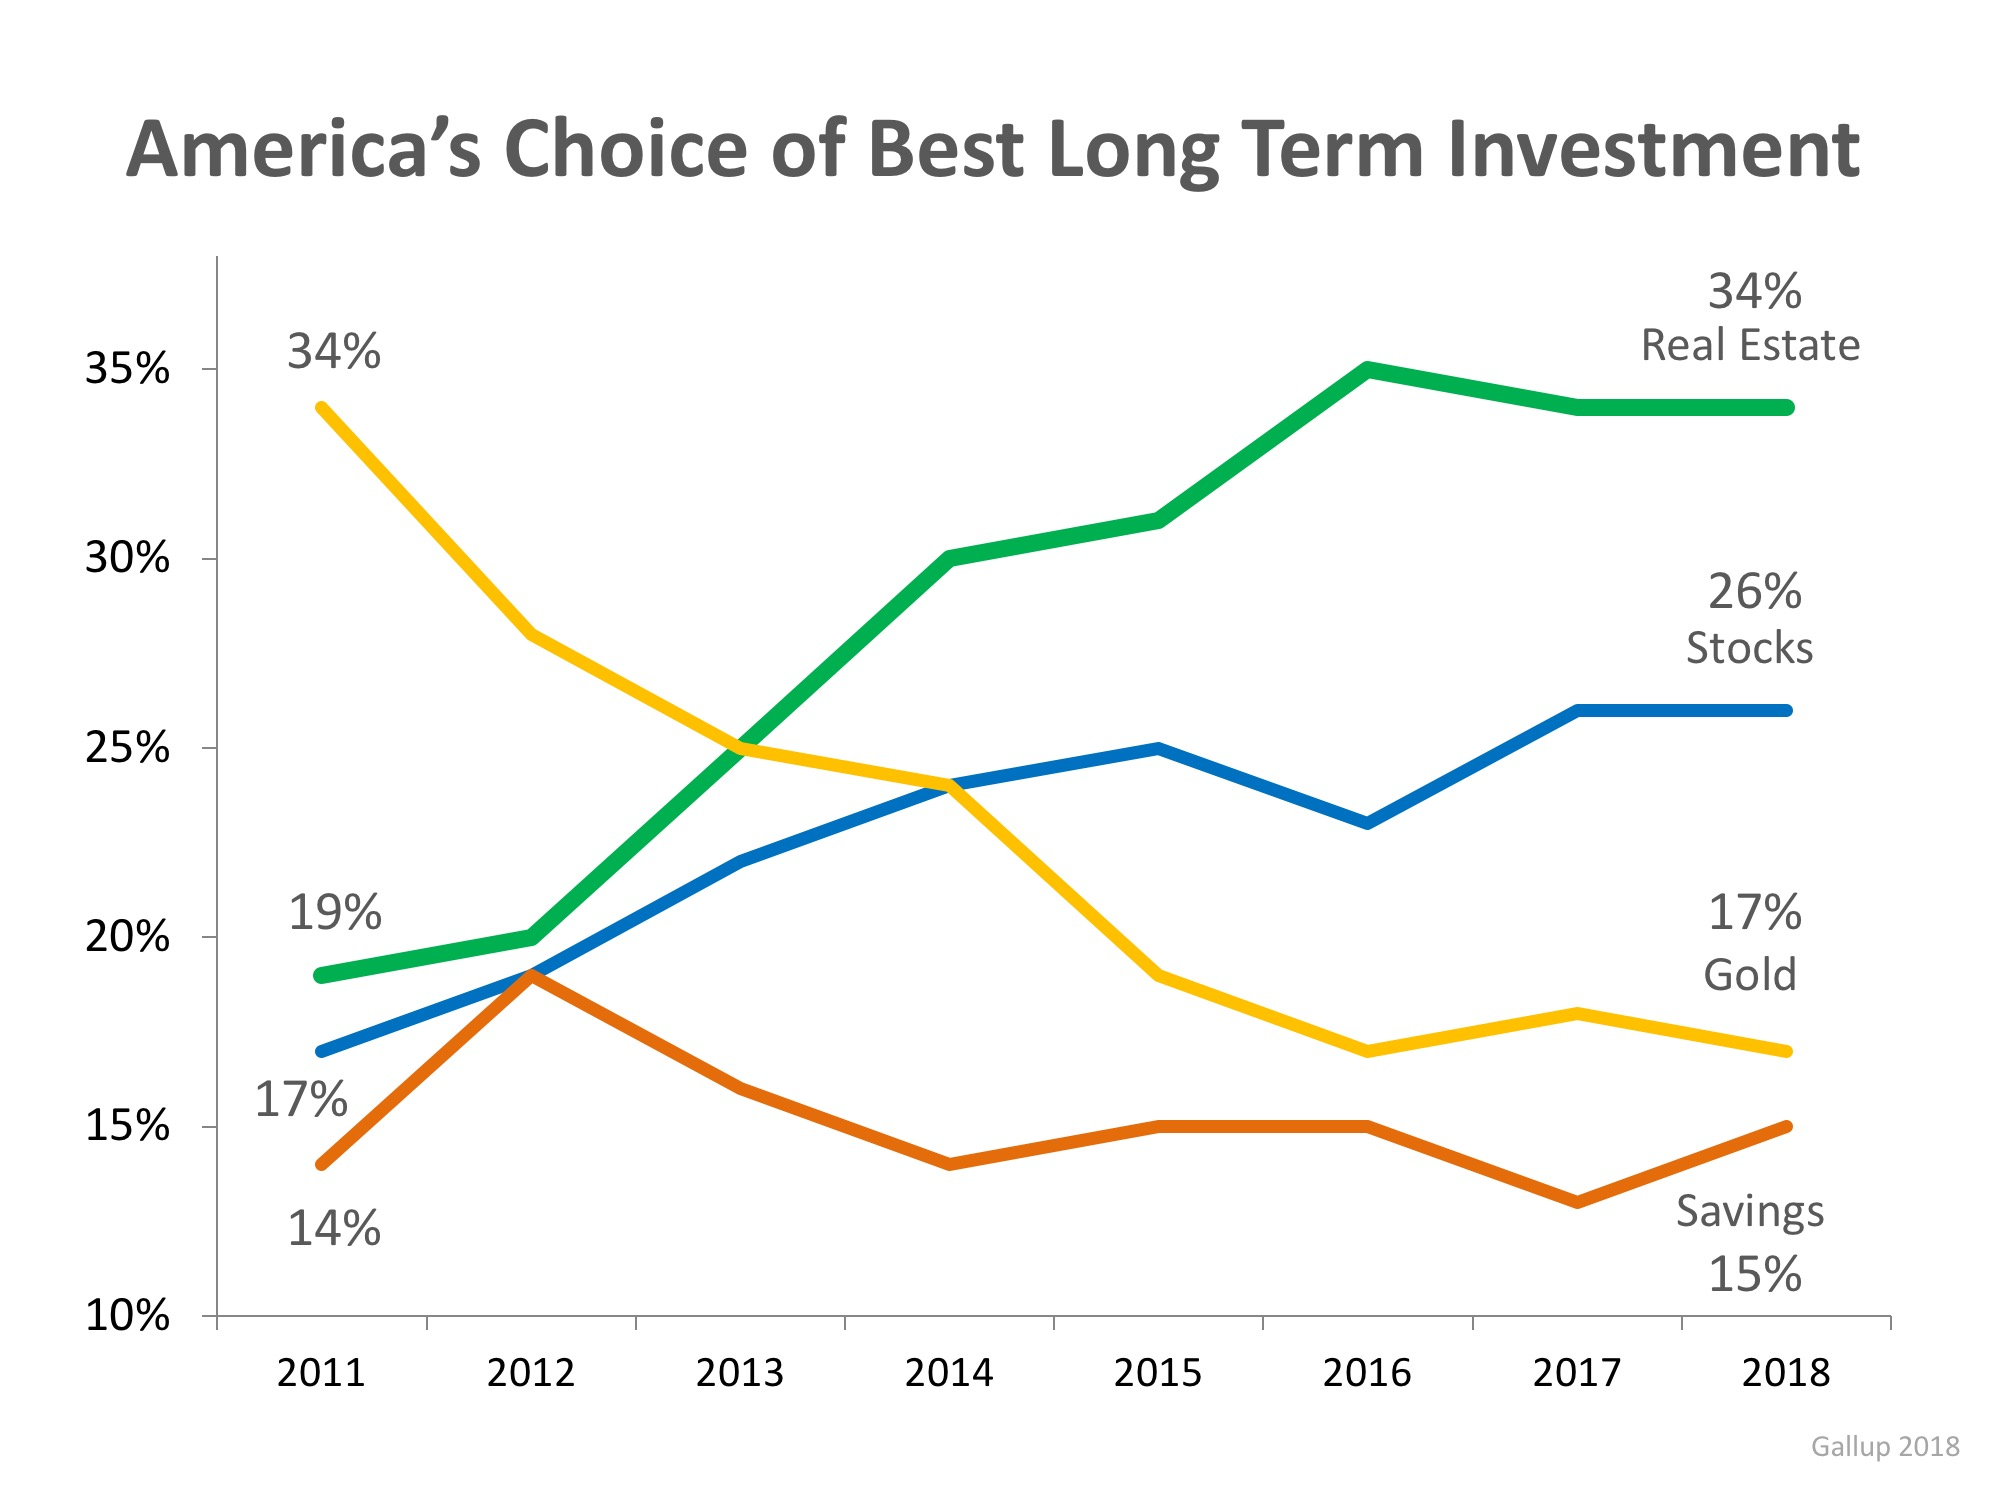 Real Estate Best Long-Term Investment